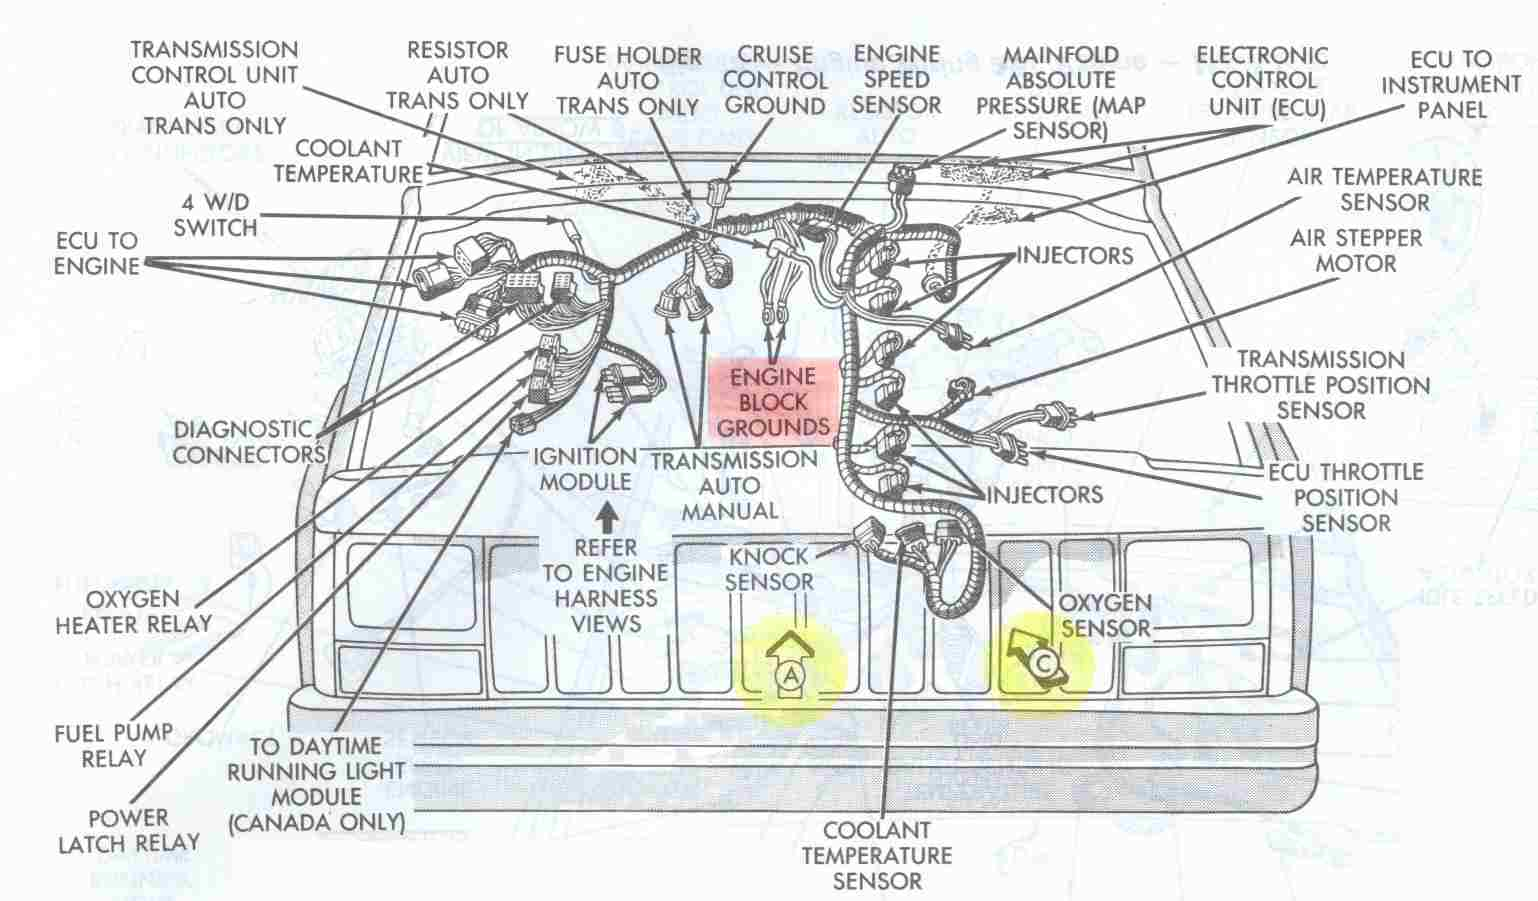 Electrical_Engine_Ground_Points_Overview jeep cherokee electrical diagnosing erratic behavior of engine 2000 jeep xj wire diagram at reclaimingppi.co